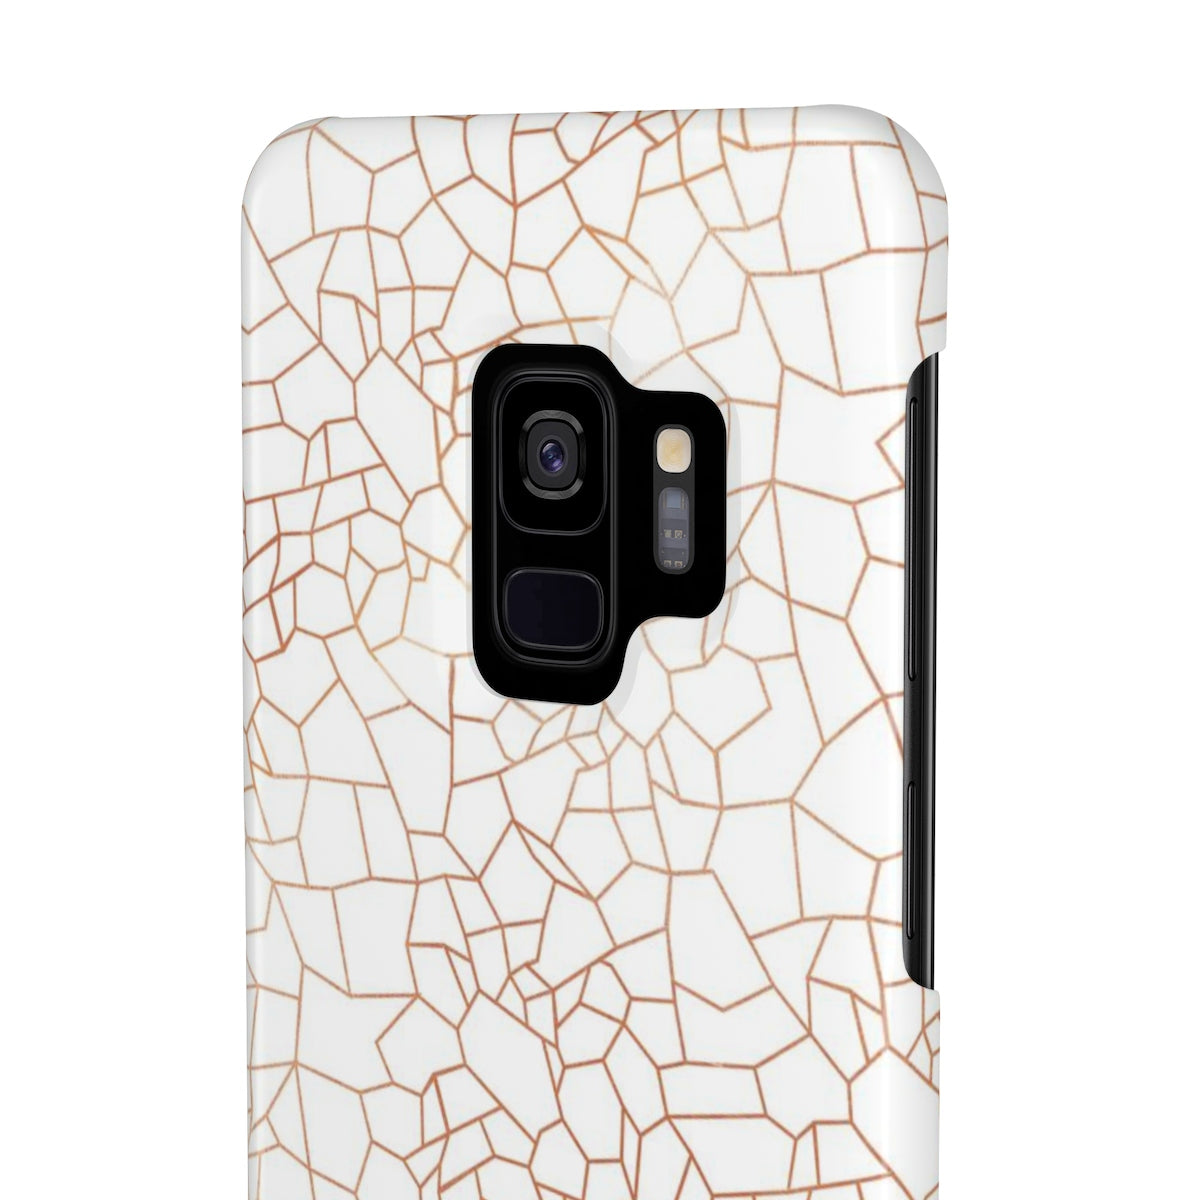 Mosaic White Sleek and Chic Phone Case